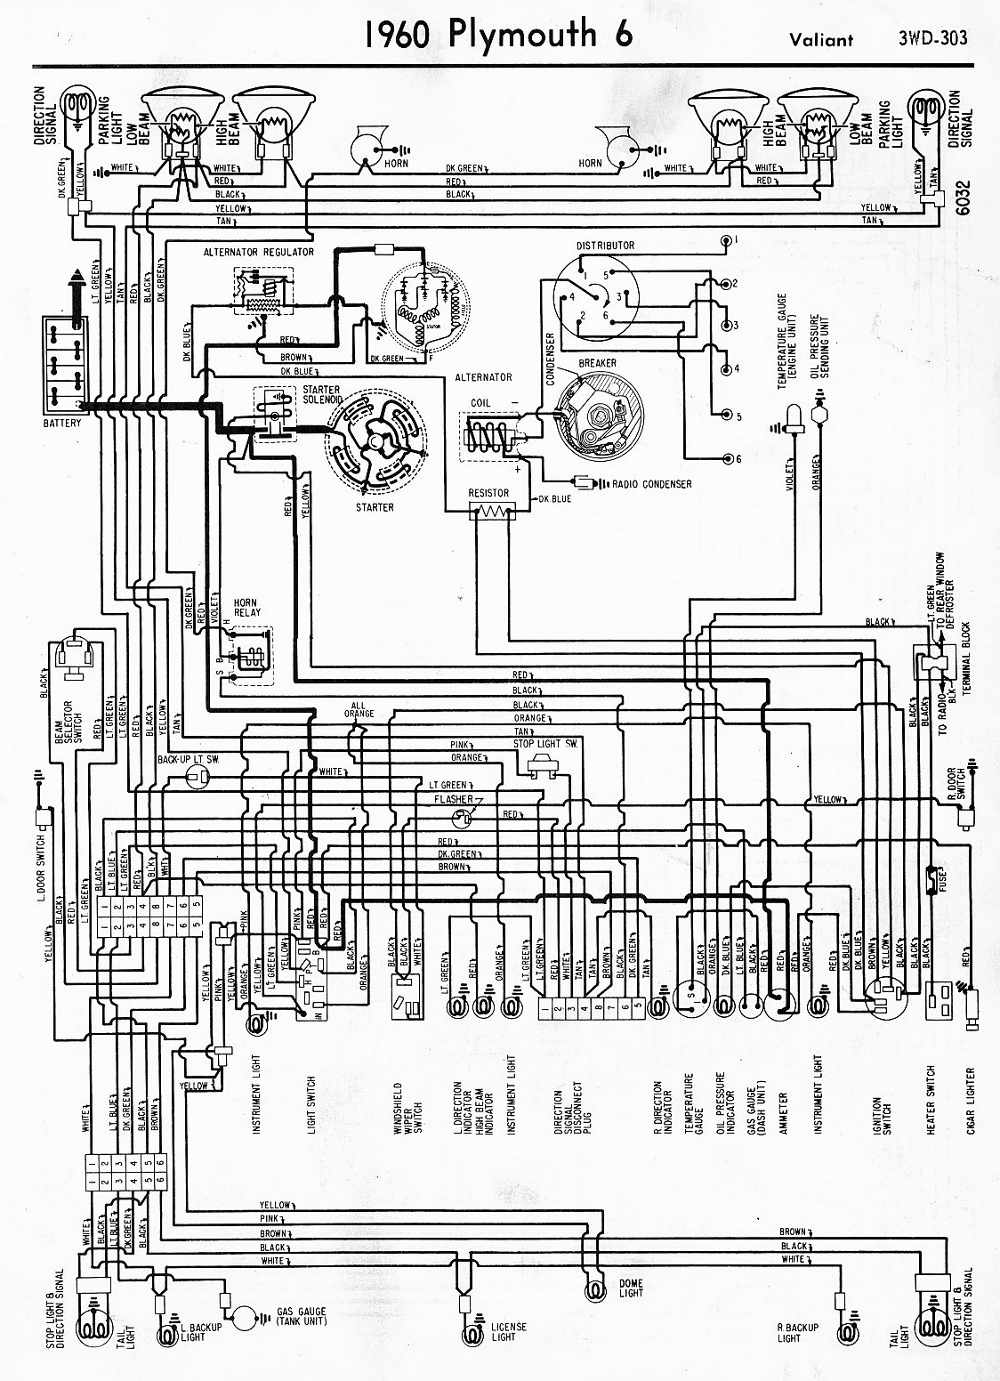 1974 Plymouth Scamp Wiring Diagram Schematic Gm Hei Connectors Best Library 1941